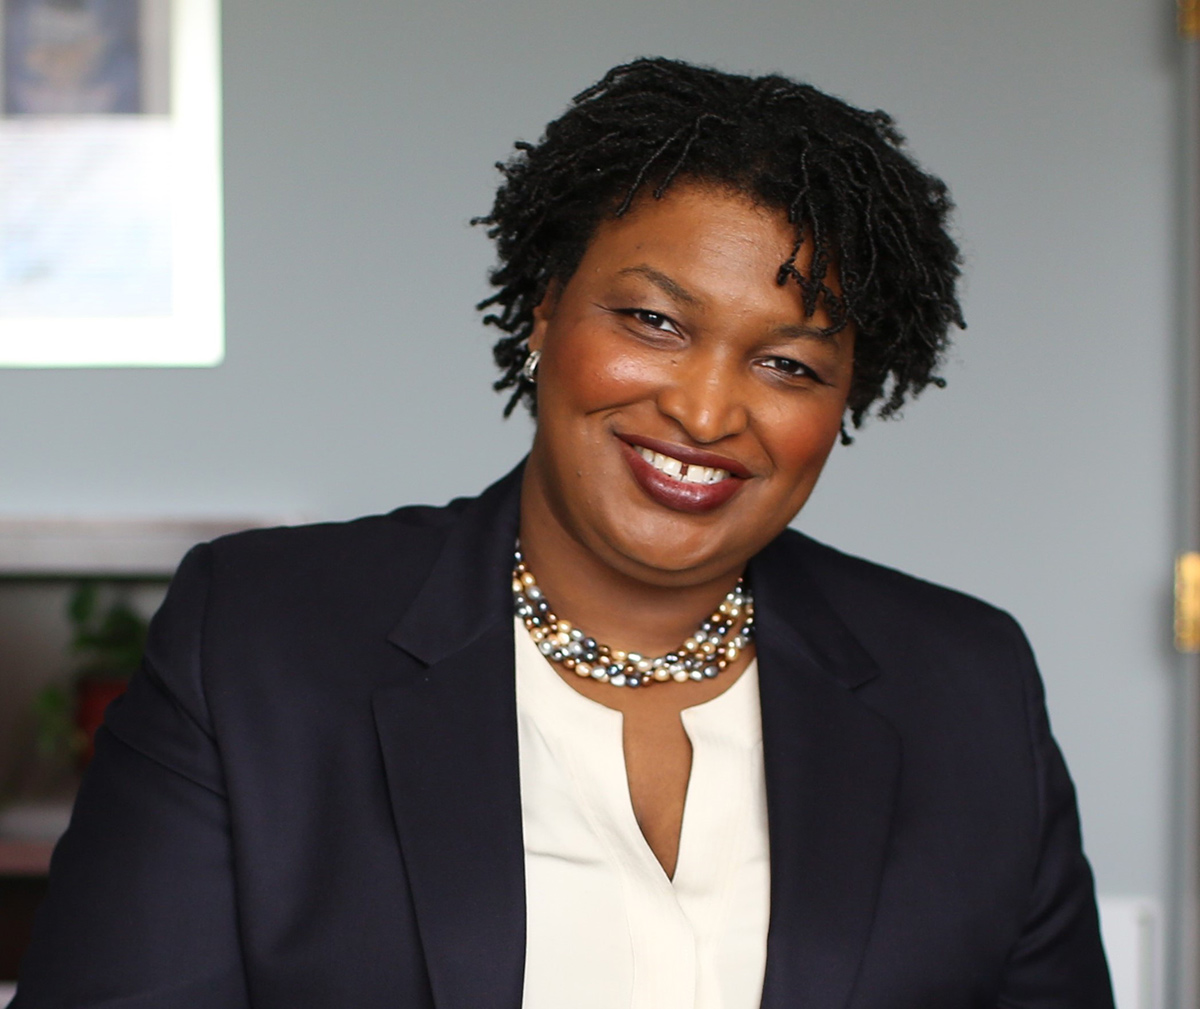 Stacey Y. Abrams